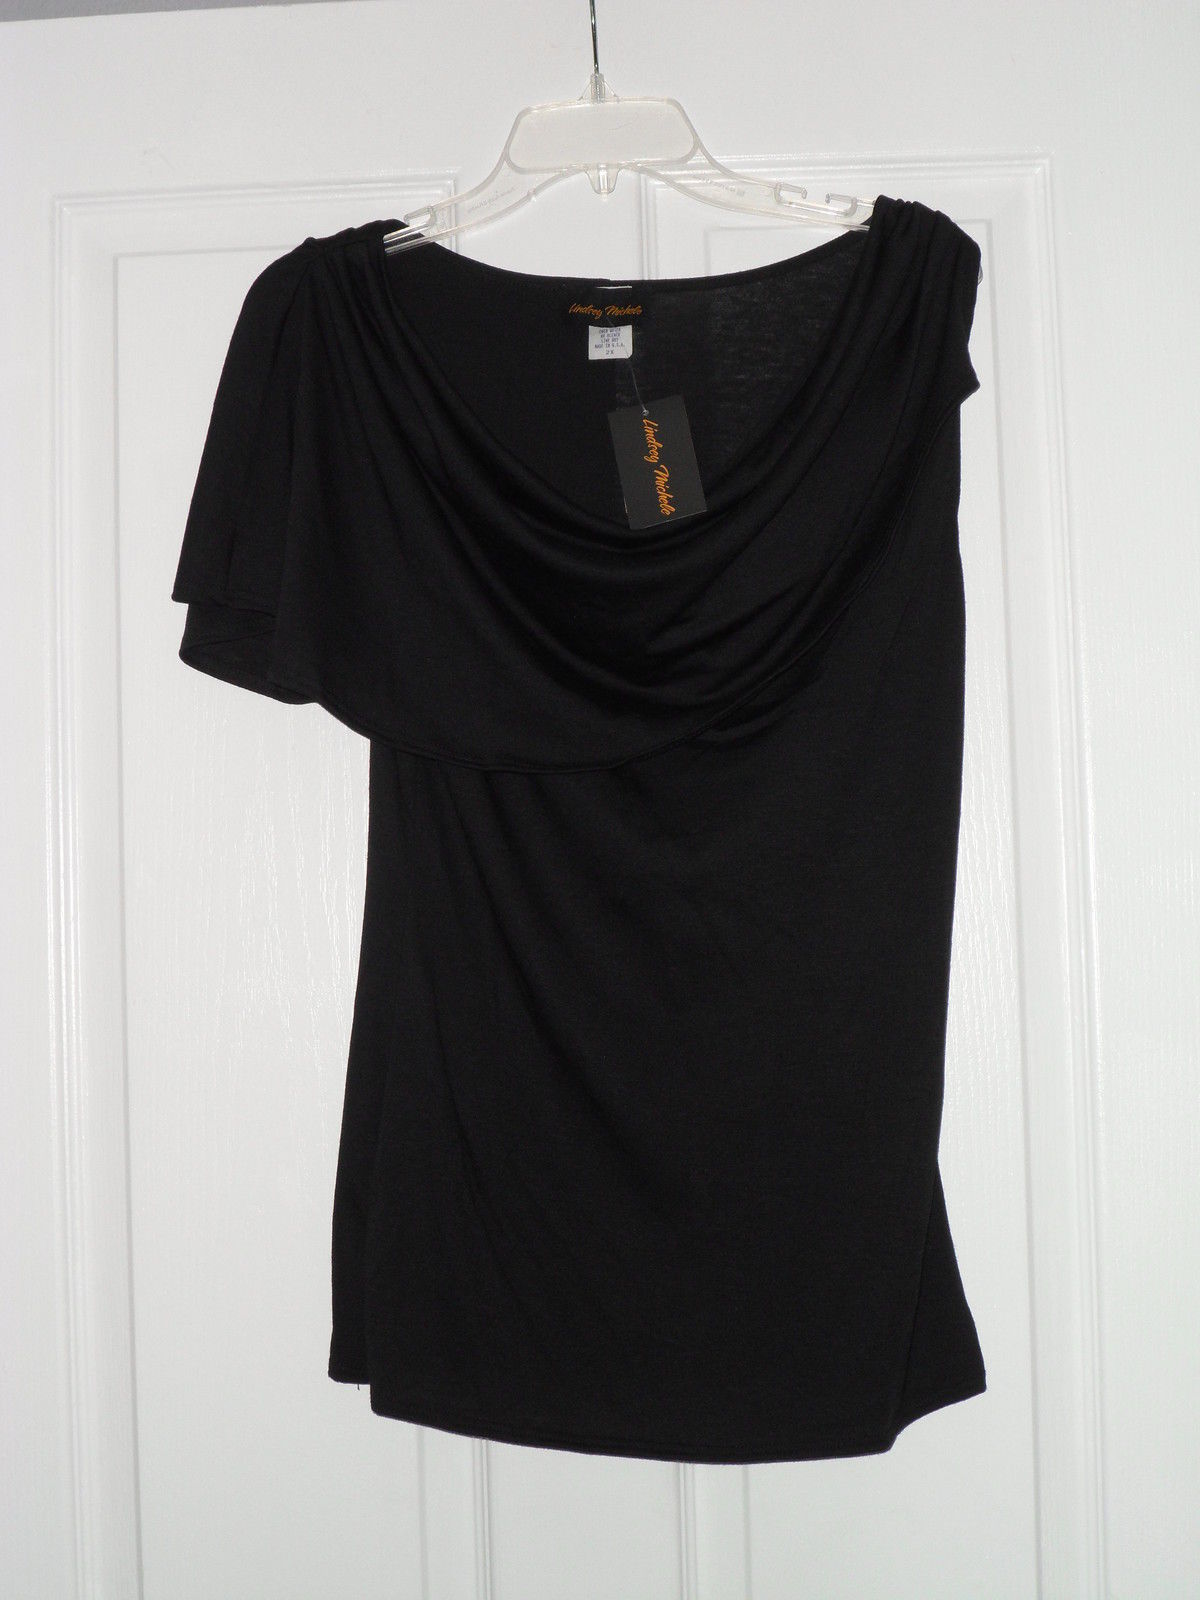 LINDSEY MICHELE BLOUSE STRETCH TOP SIZE L BLACK MADE IN U.S.A. NWT - $14.99